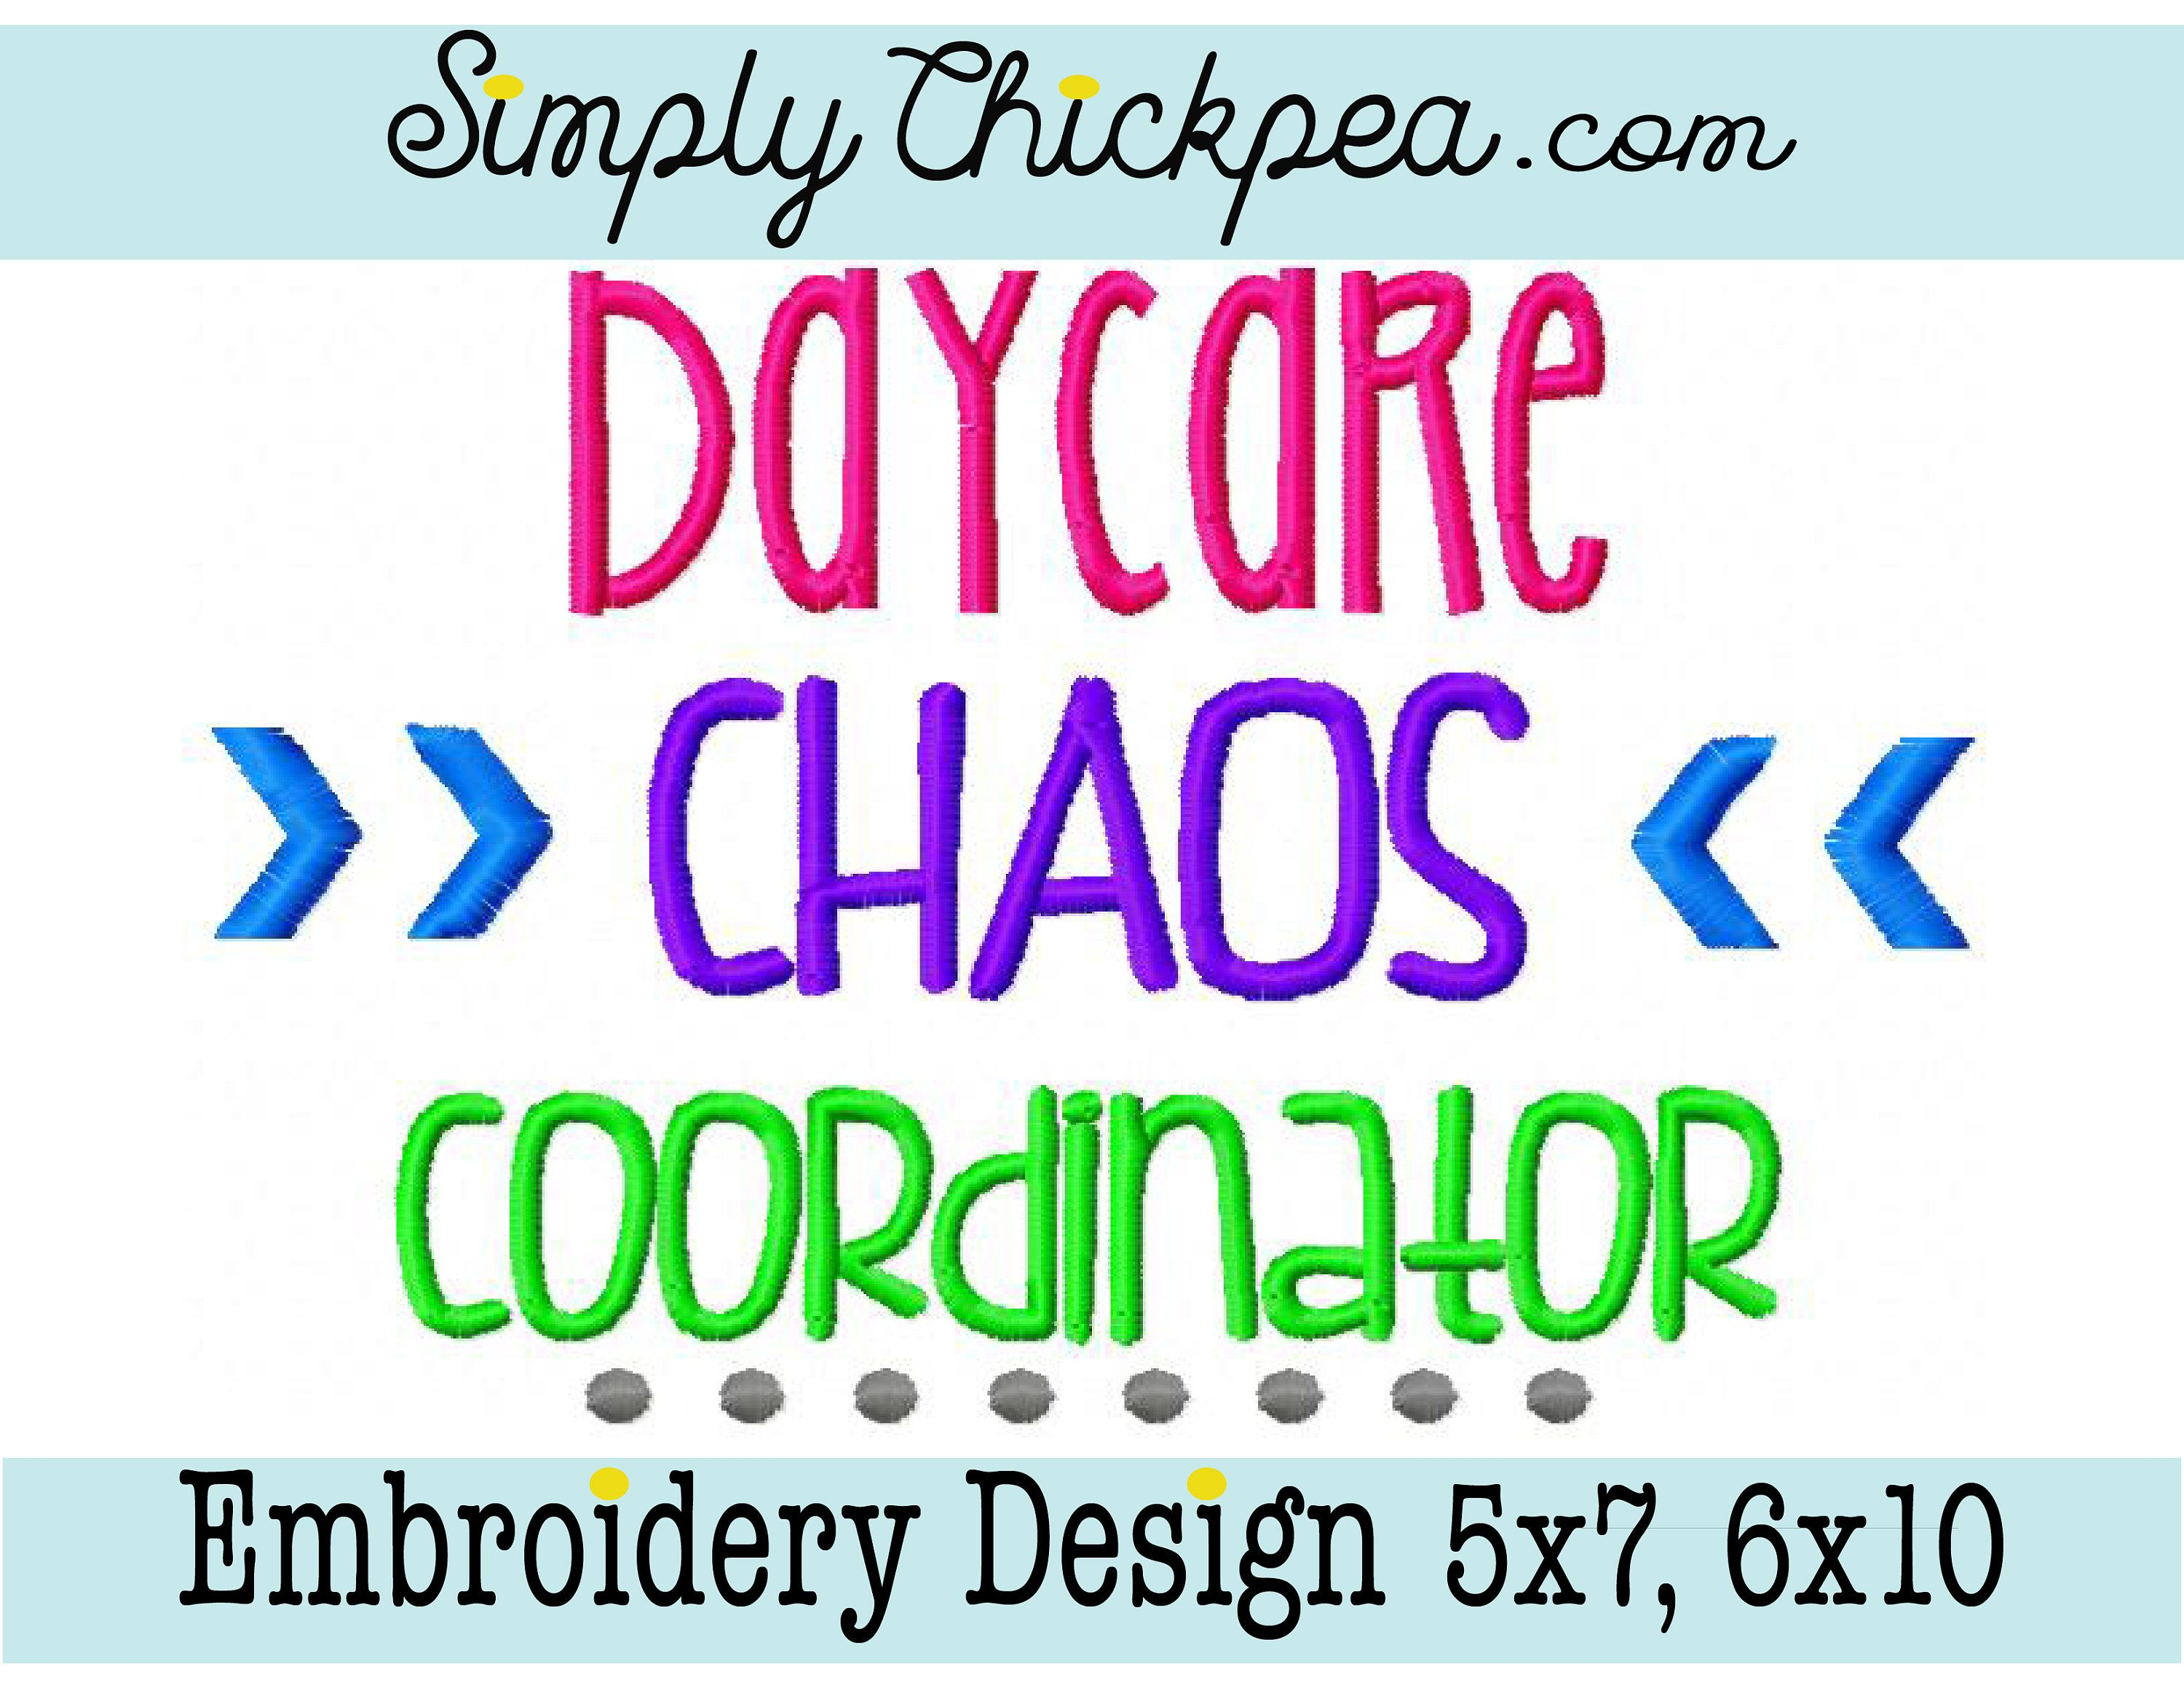 Embroidery Design Daycare Chaos Coordinator Saying Back to